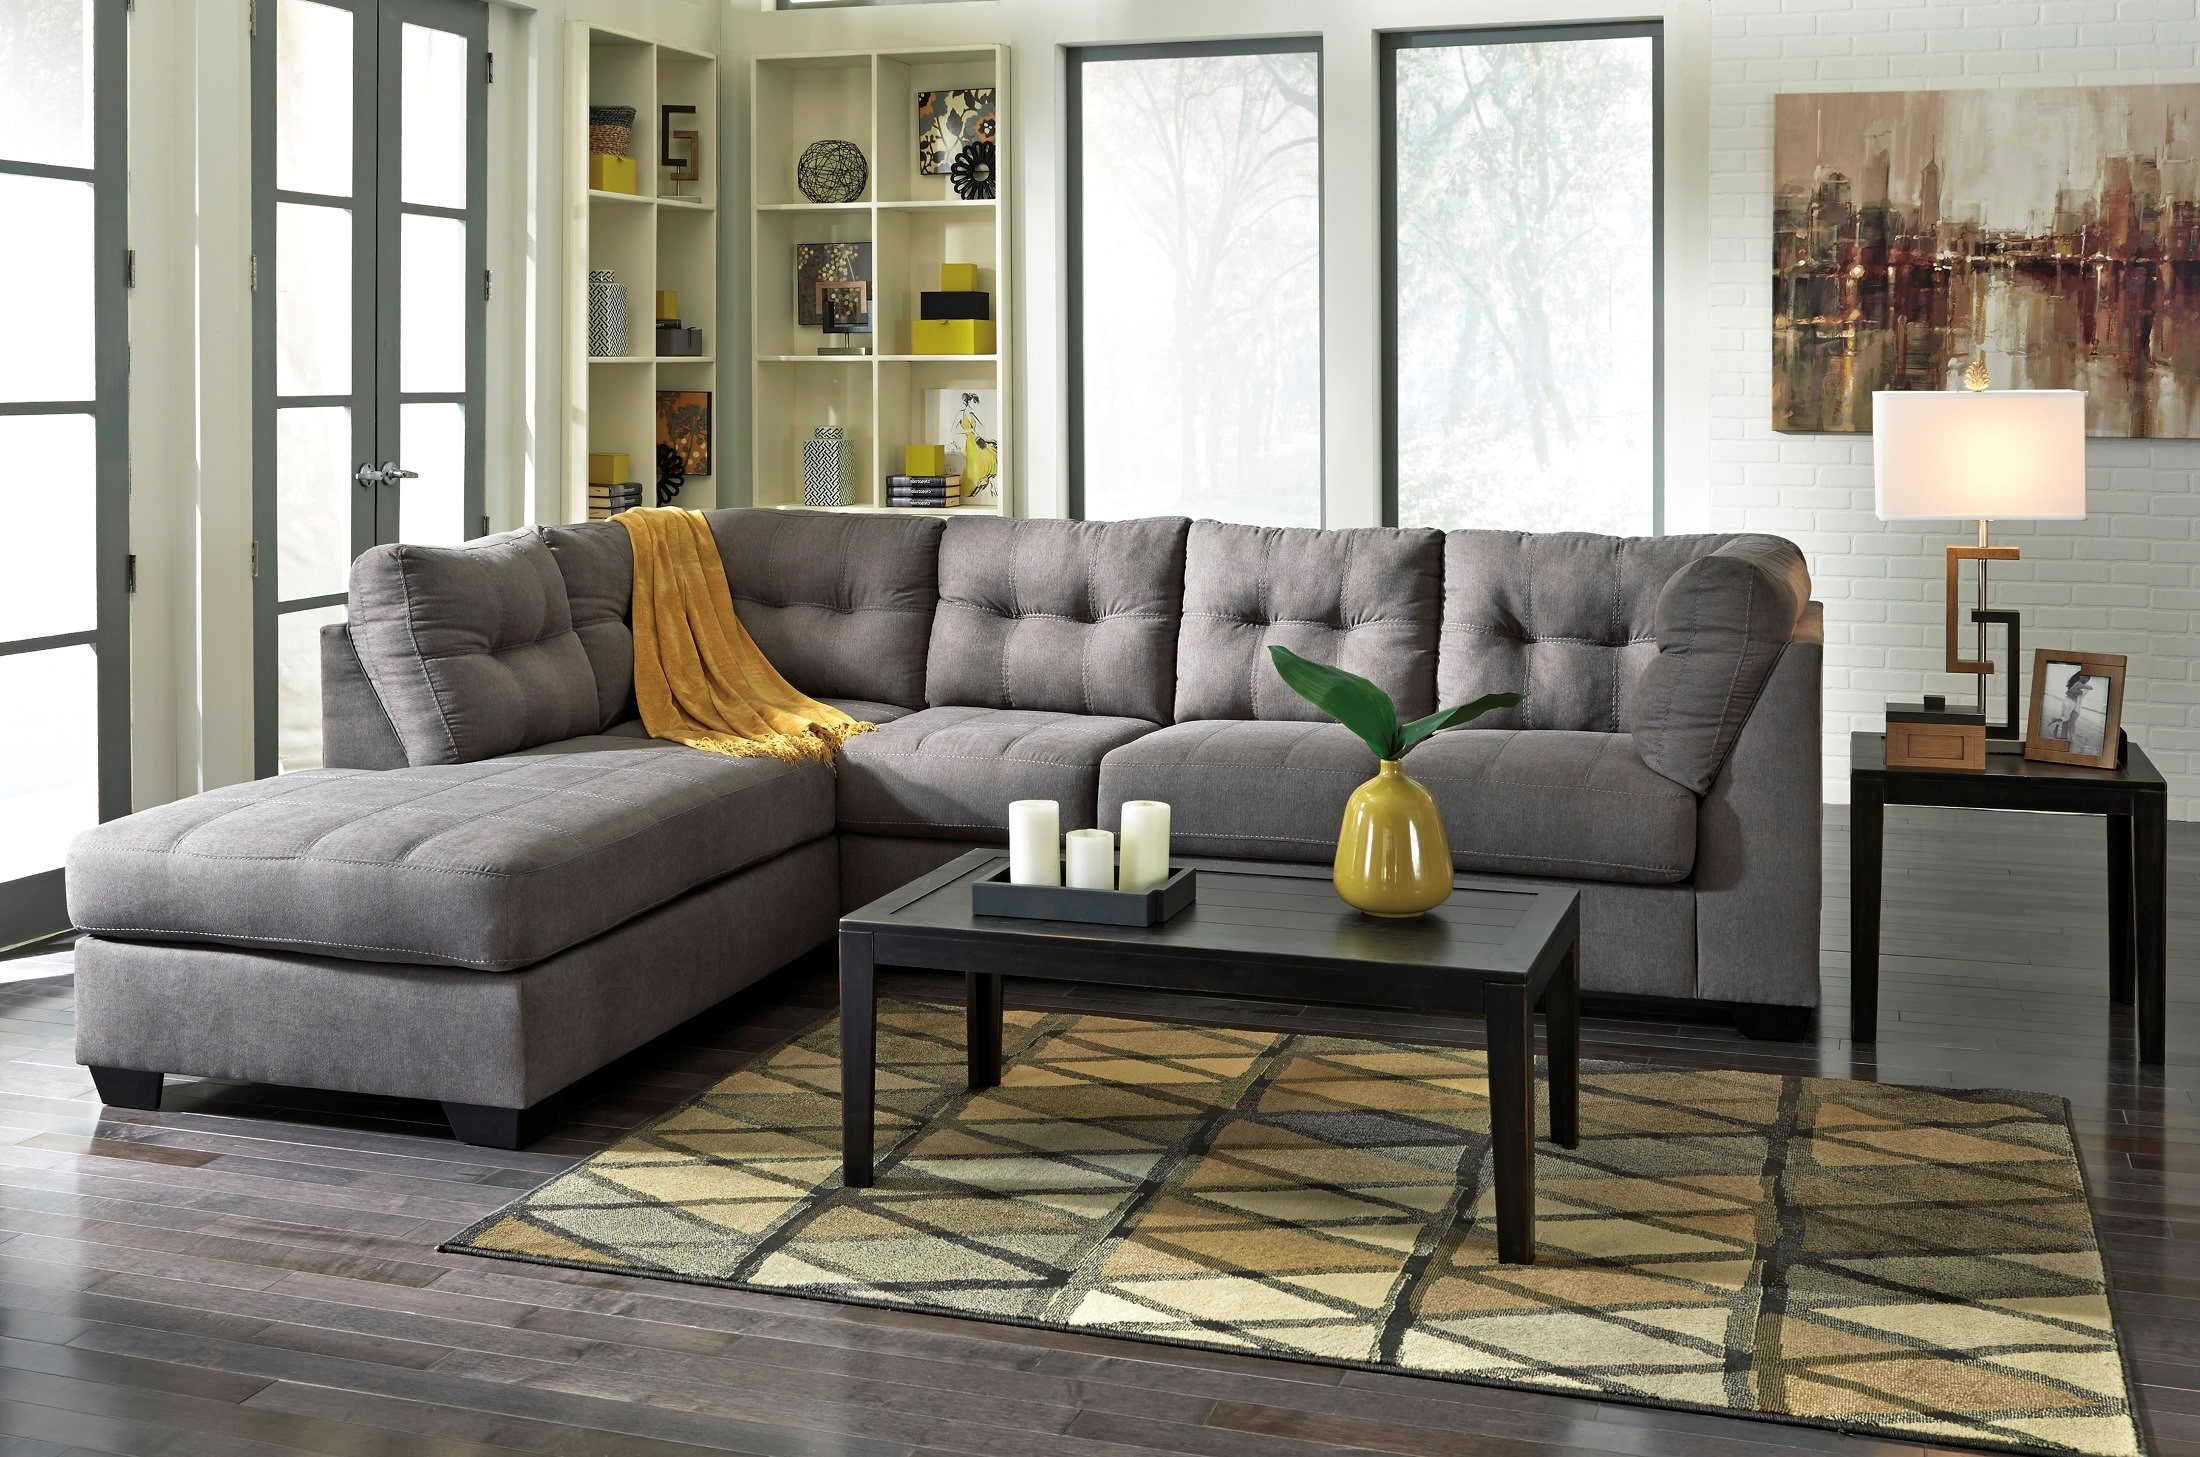 ashley furniture modern sofa cushions covers maier charcoal laf sectional from (45200-16-67 ...